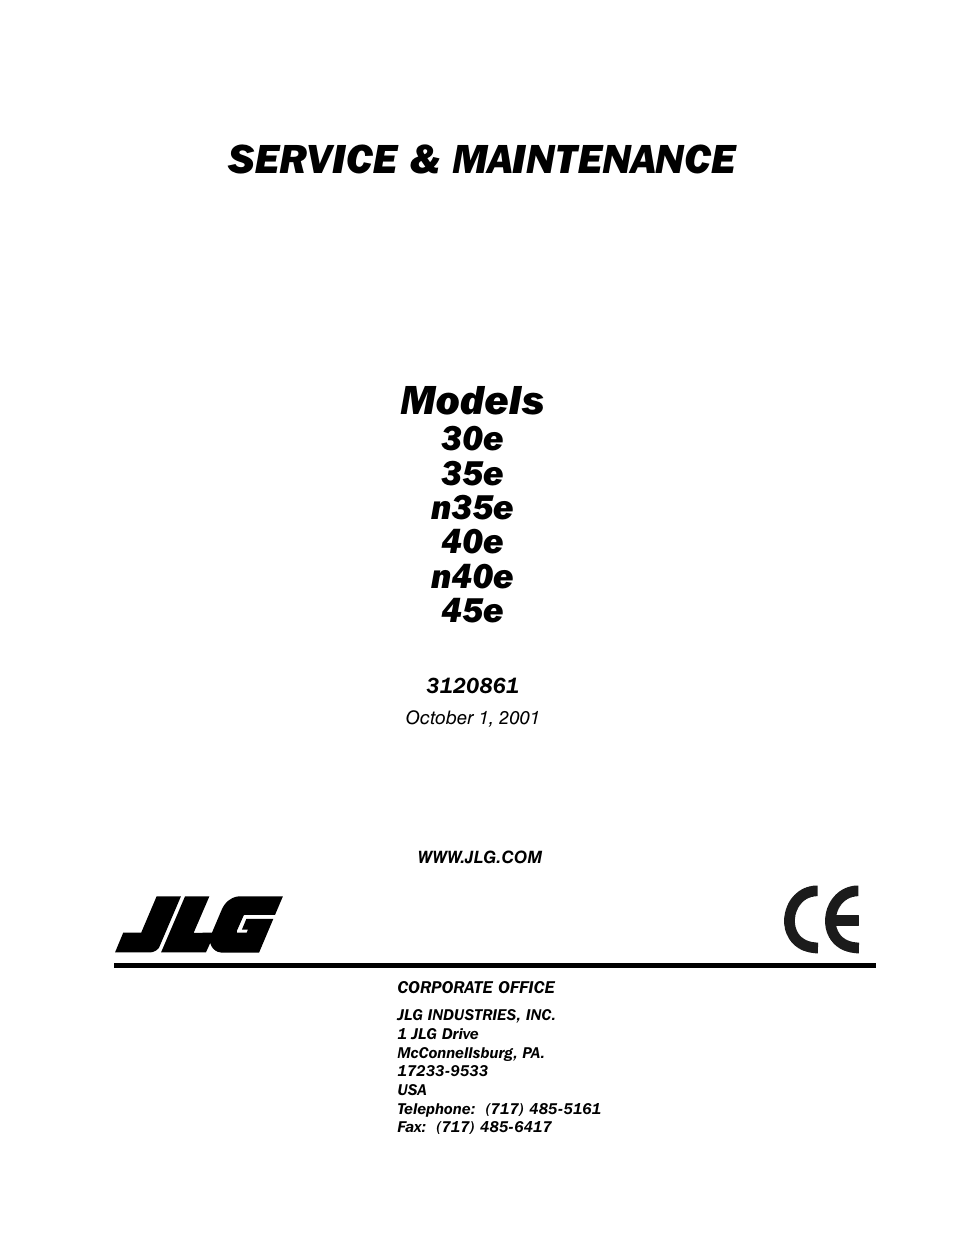 jlg service manual various owner manual guide u2022 rh justk co jlg boom lift operators manual jlg boom lift service manual